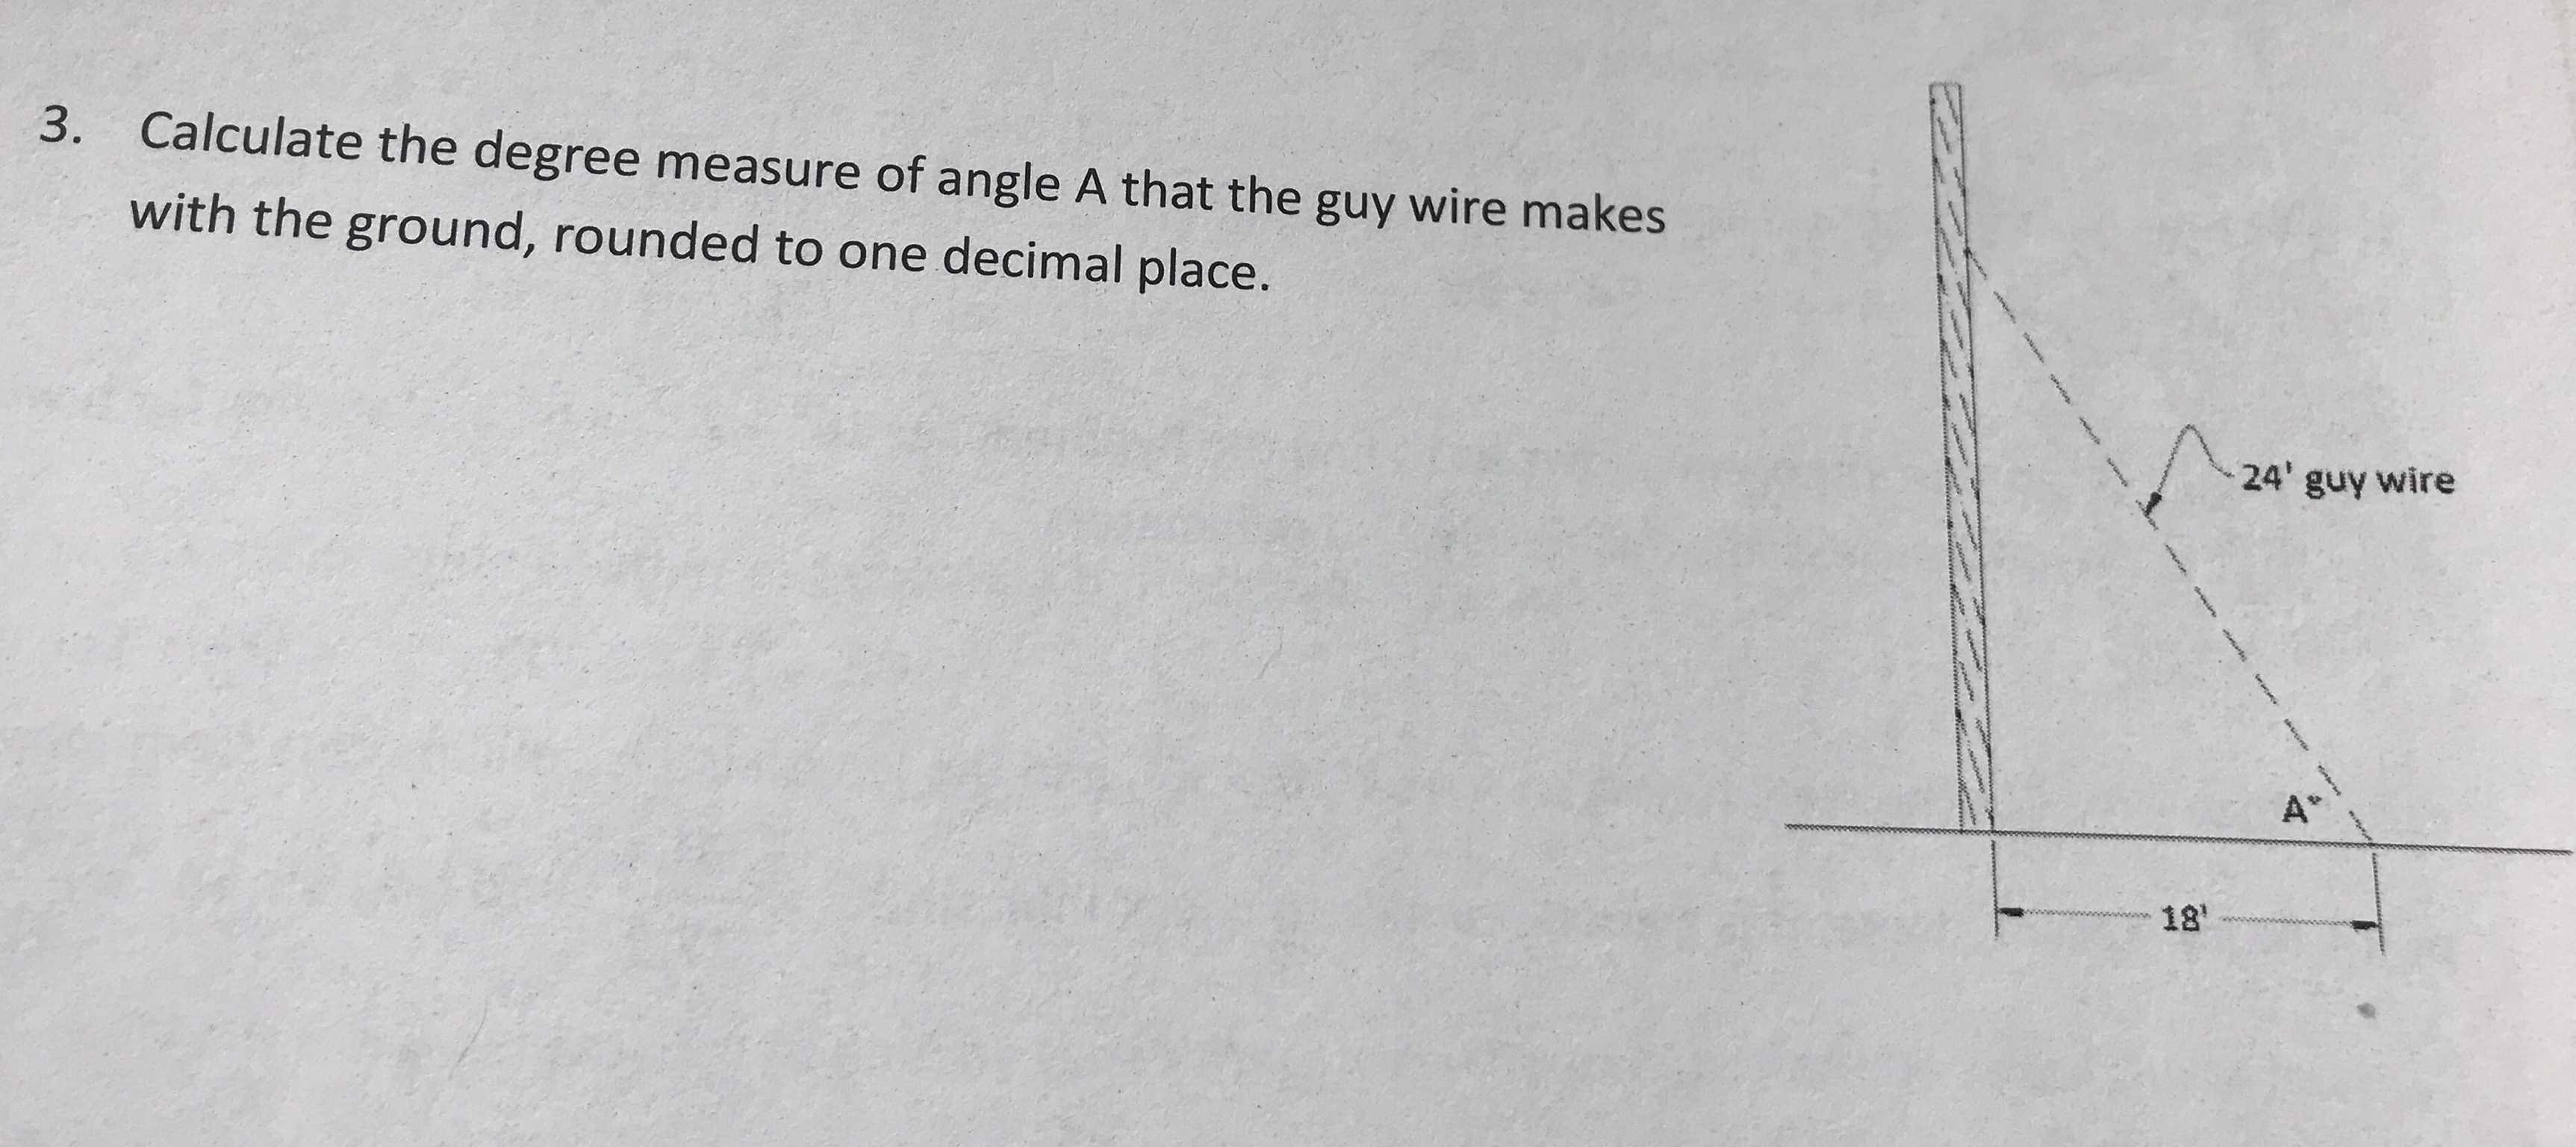 "Calculate the degree measure of angle A that the guy wire makes with the ground, rounded to one decimal place. 3. 24' guy wire A"" 181"